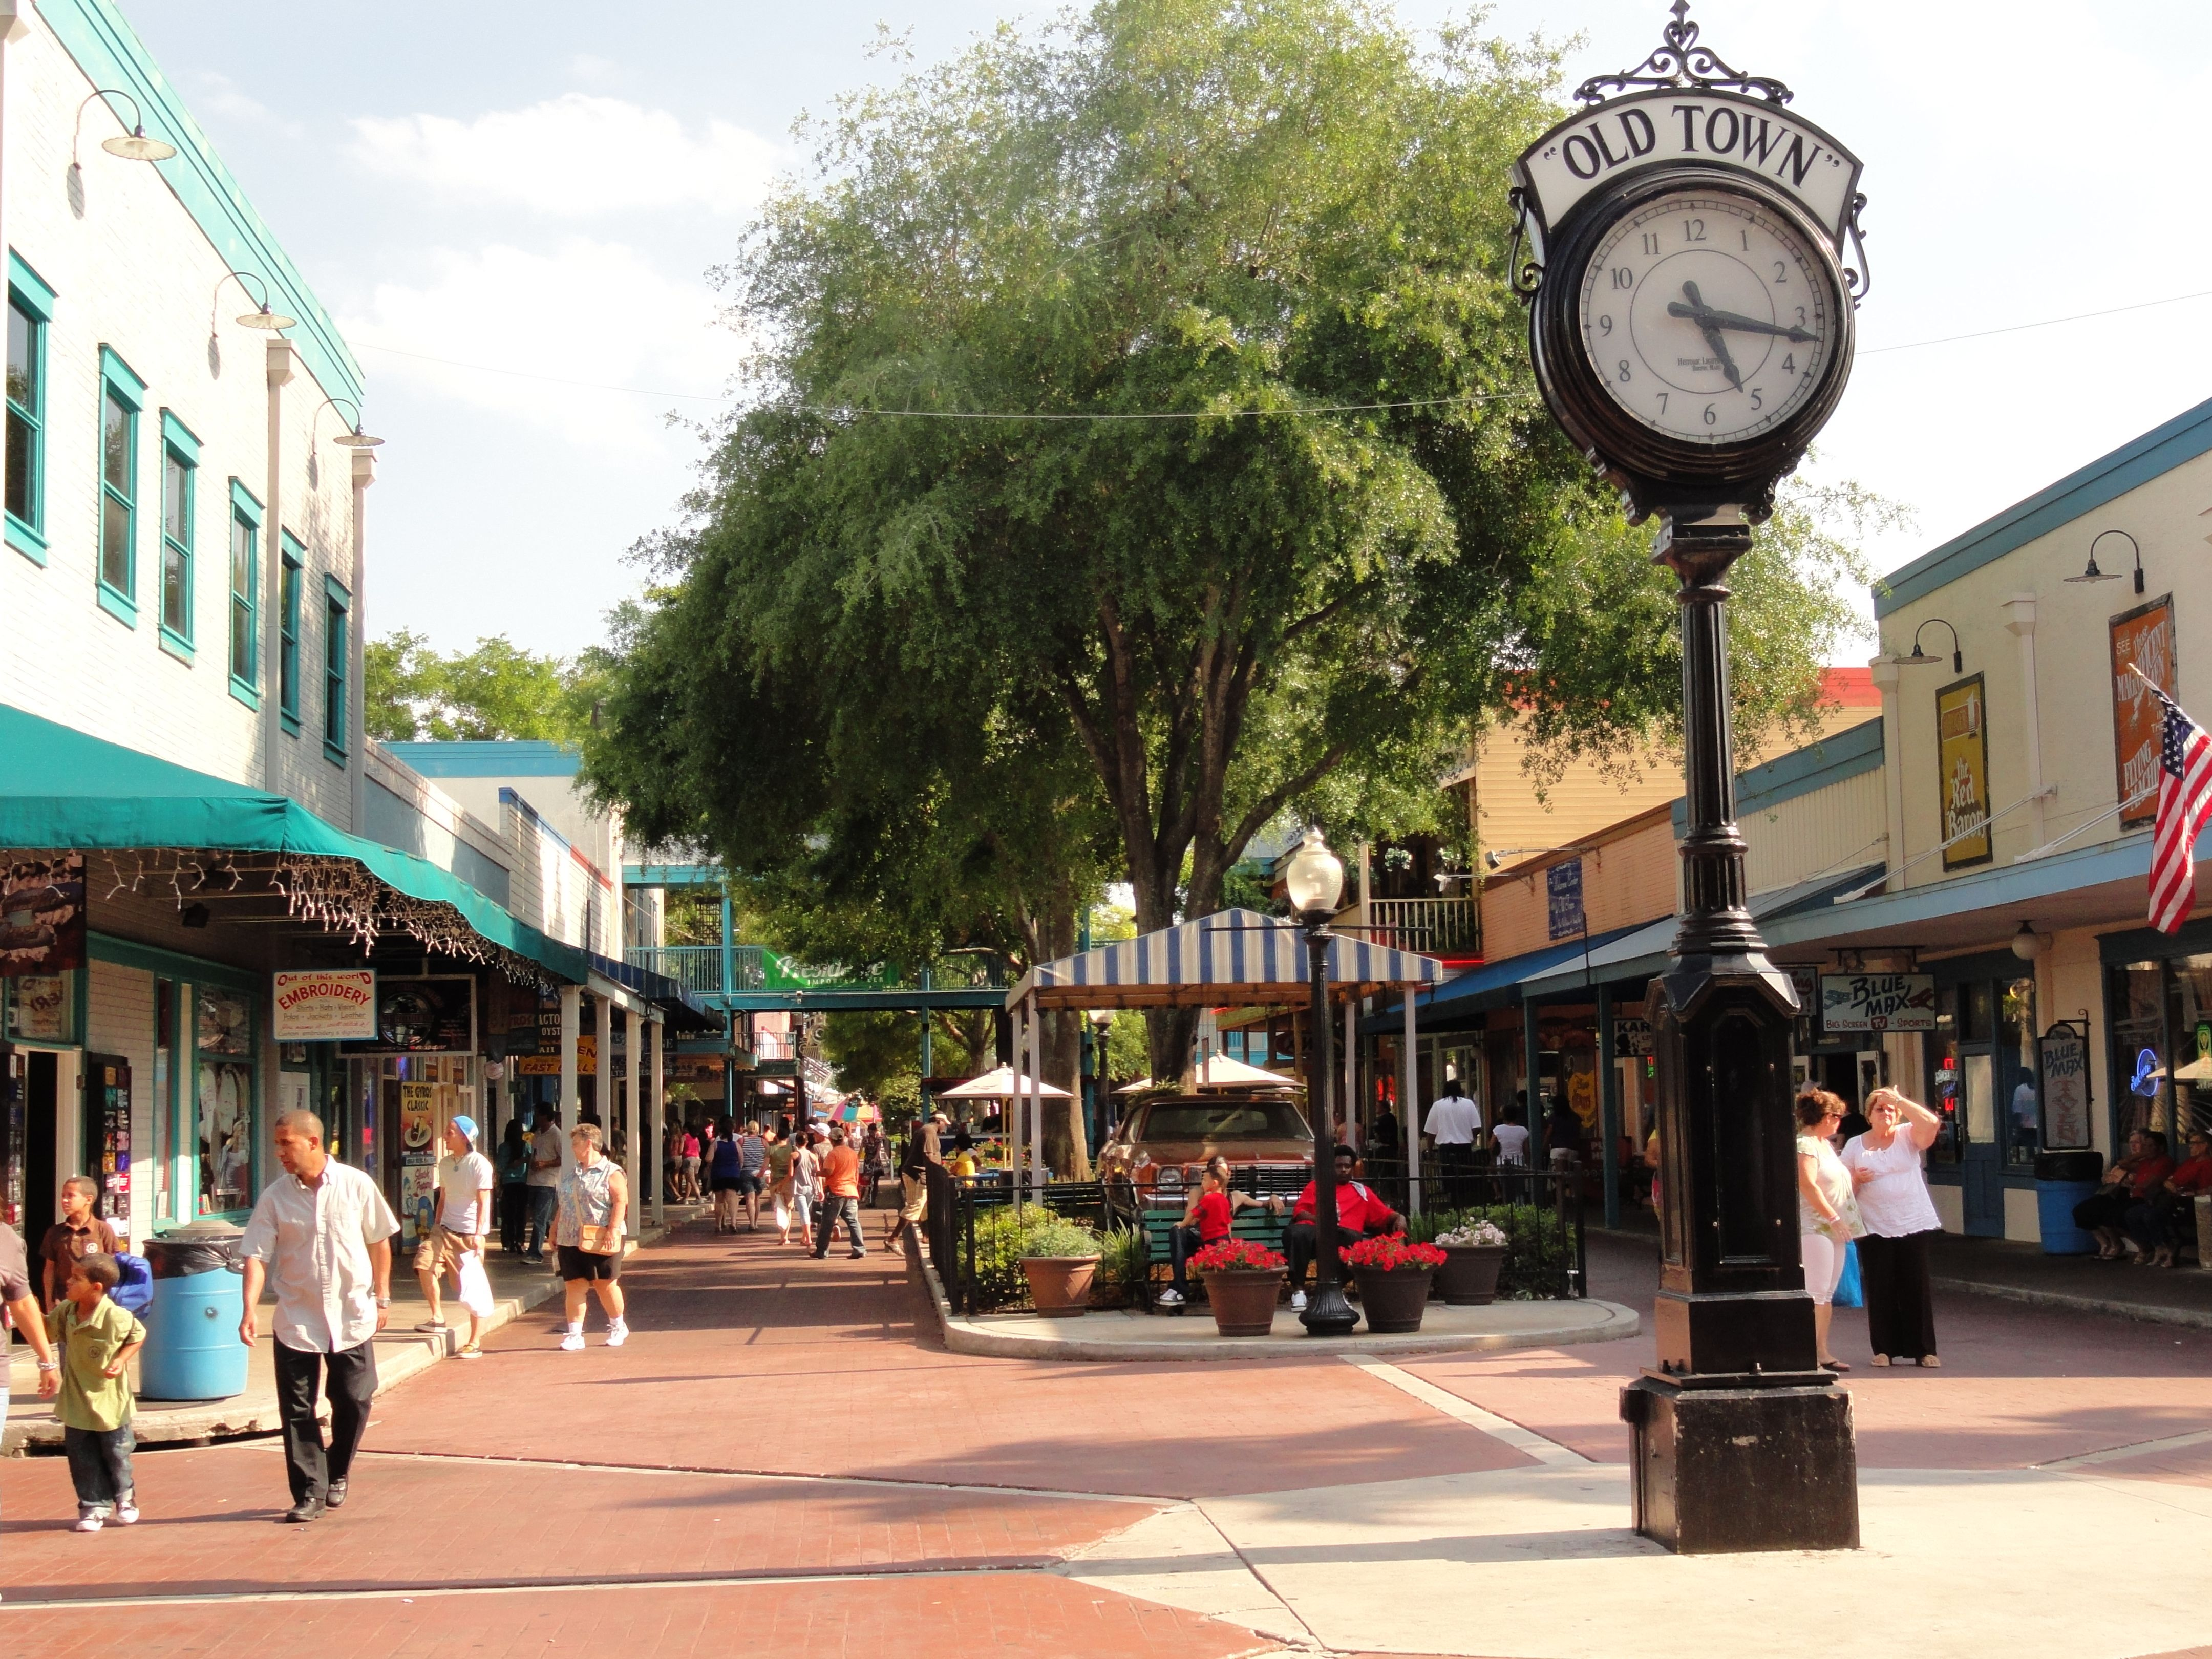 Old Town In Kissimmee Florida Is Not A Real Town But A